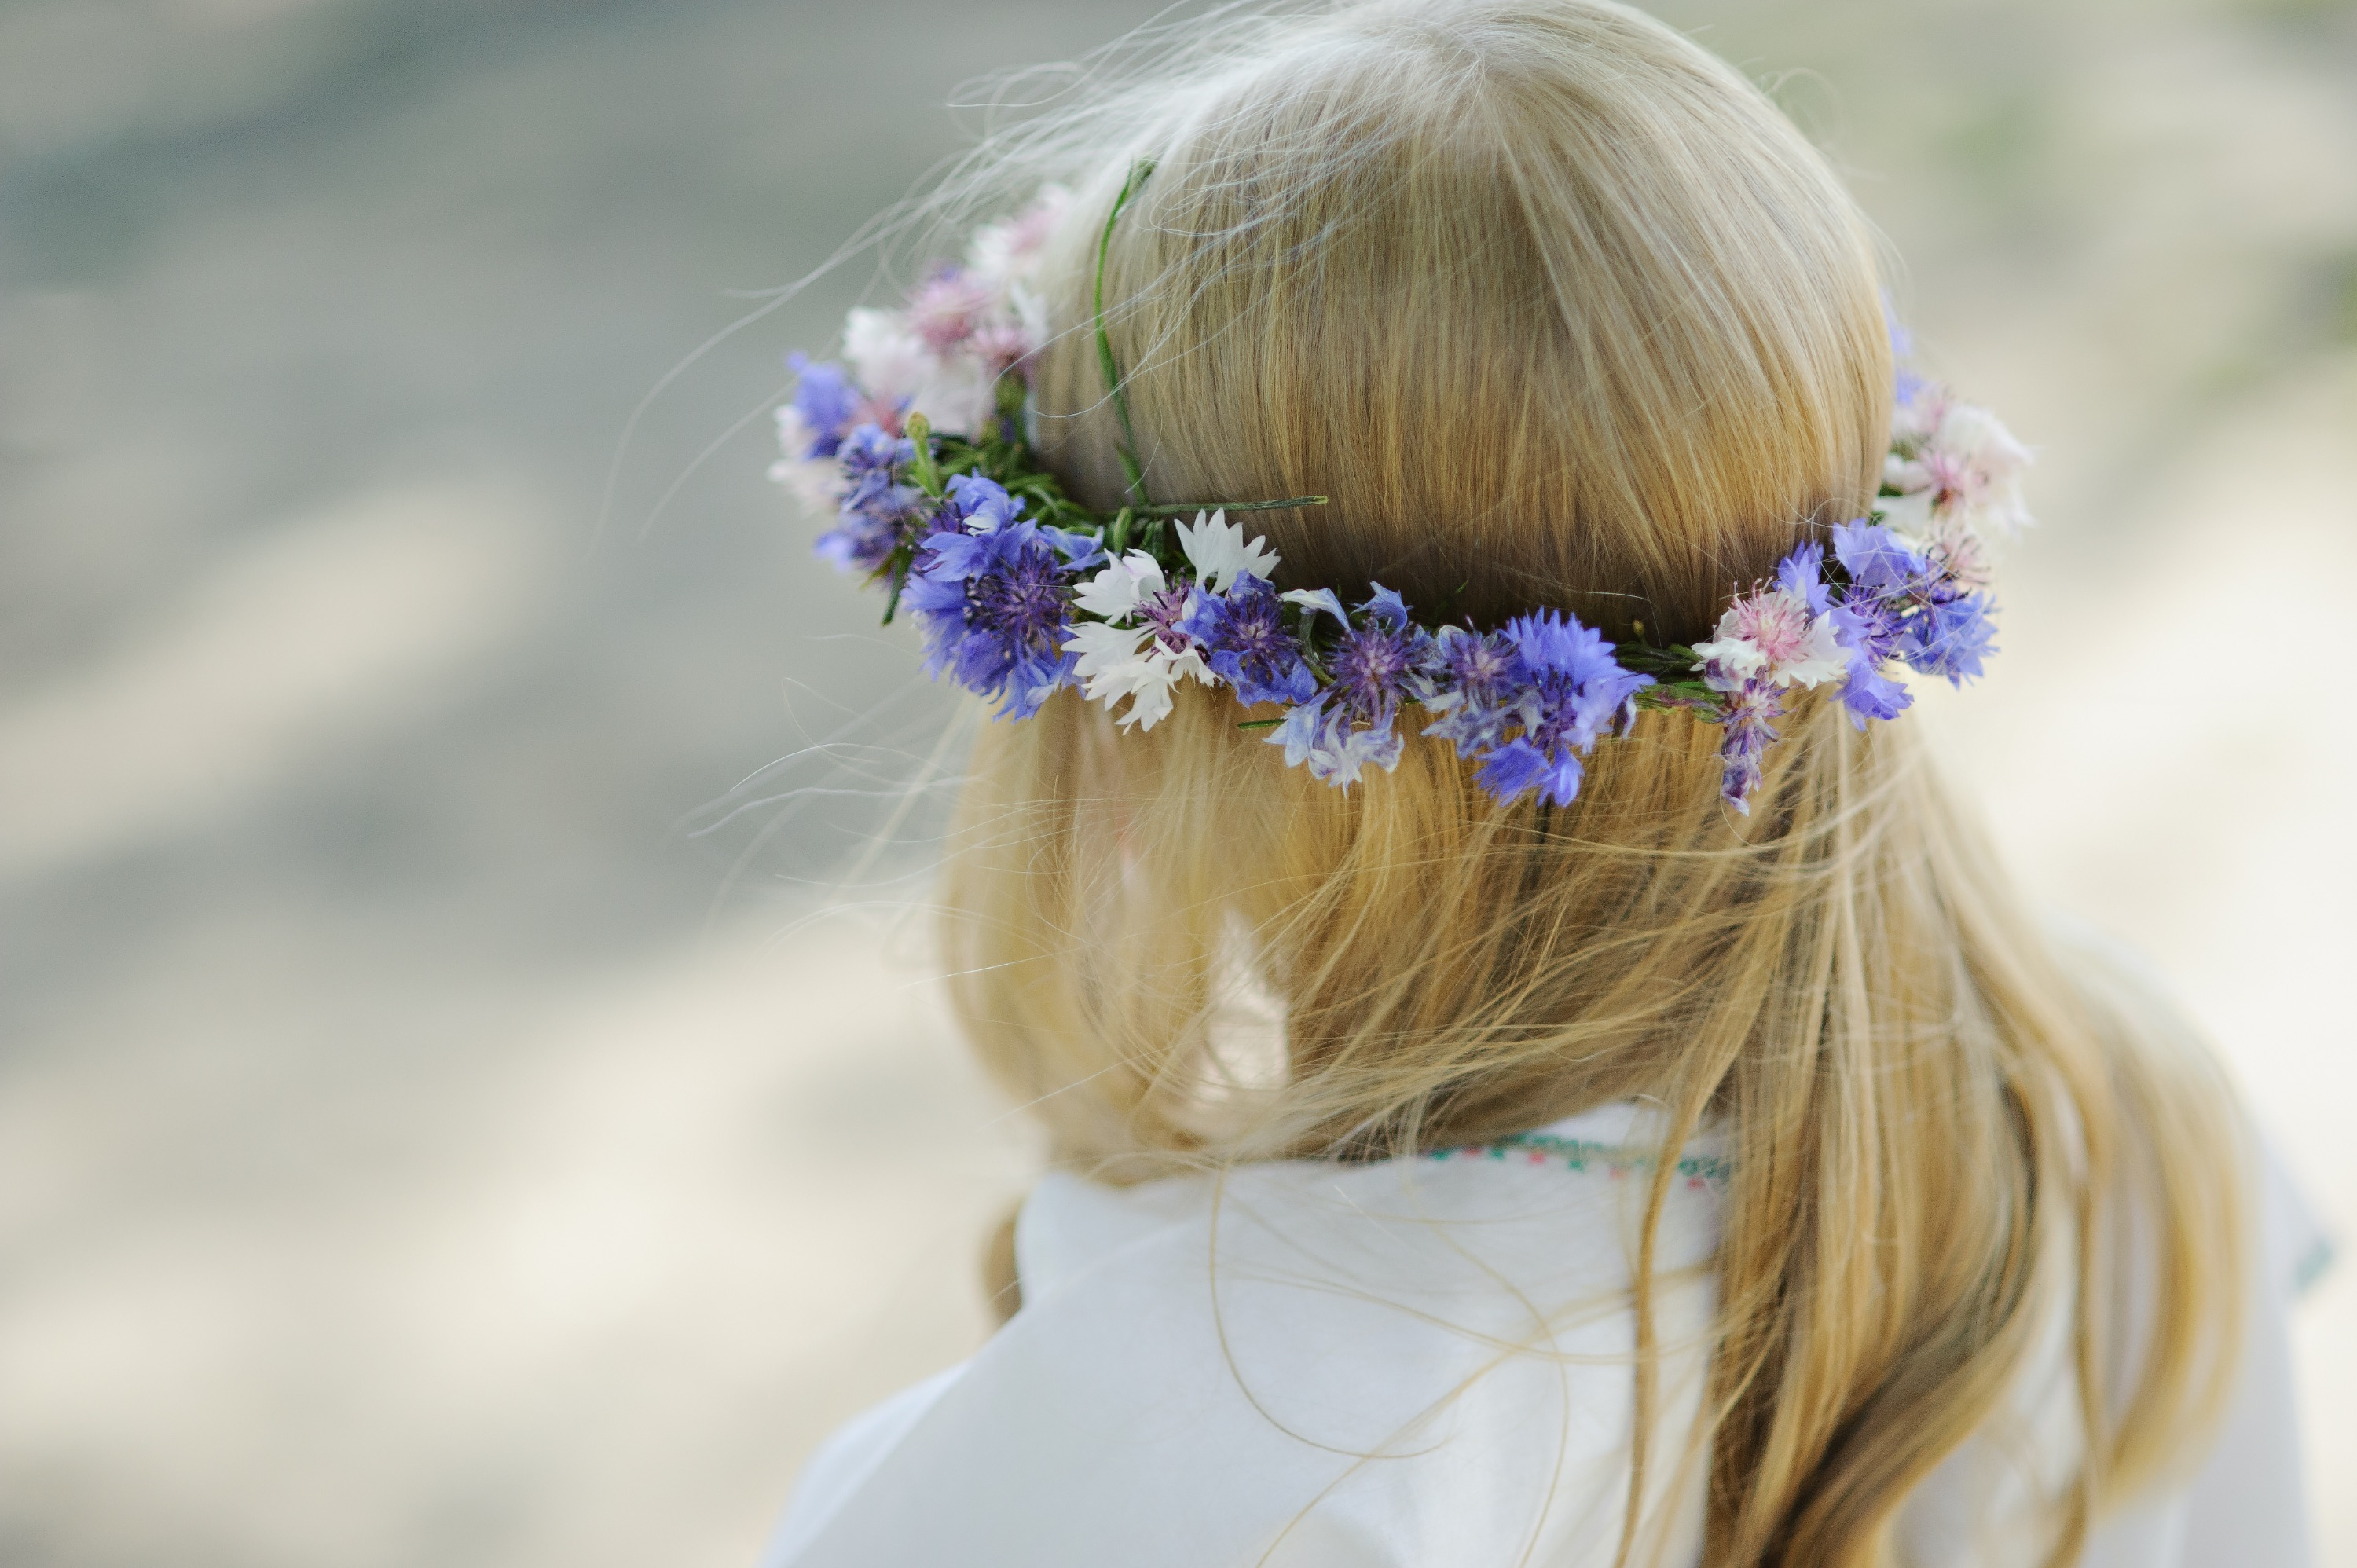 Blond%20girl%20with%20a%20wreath%20of%20